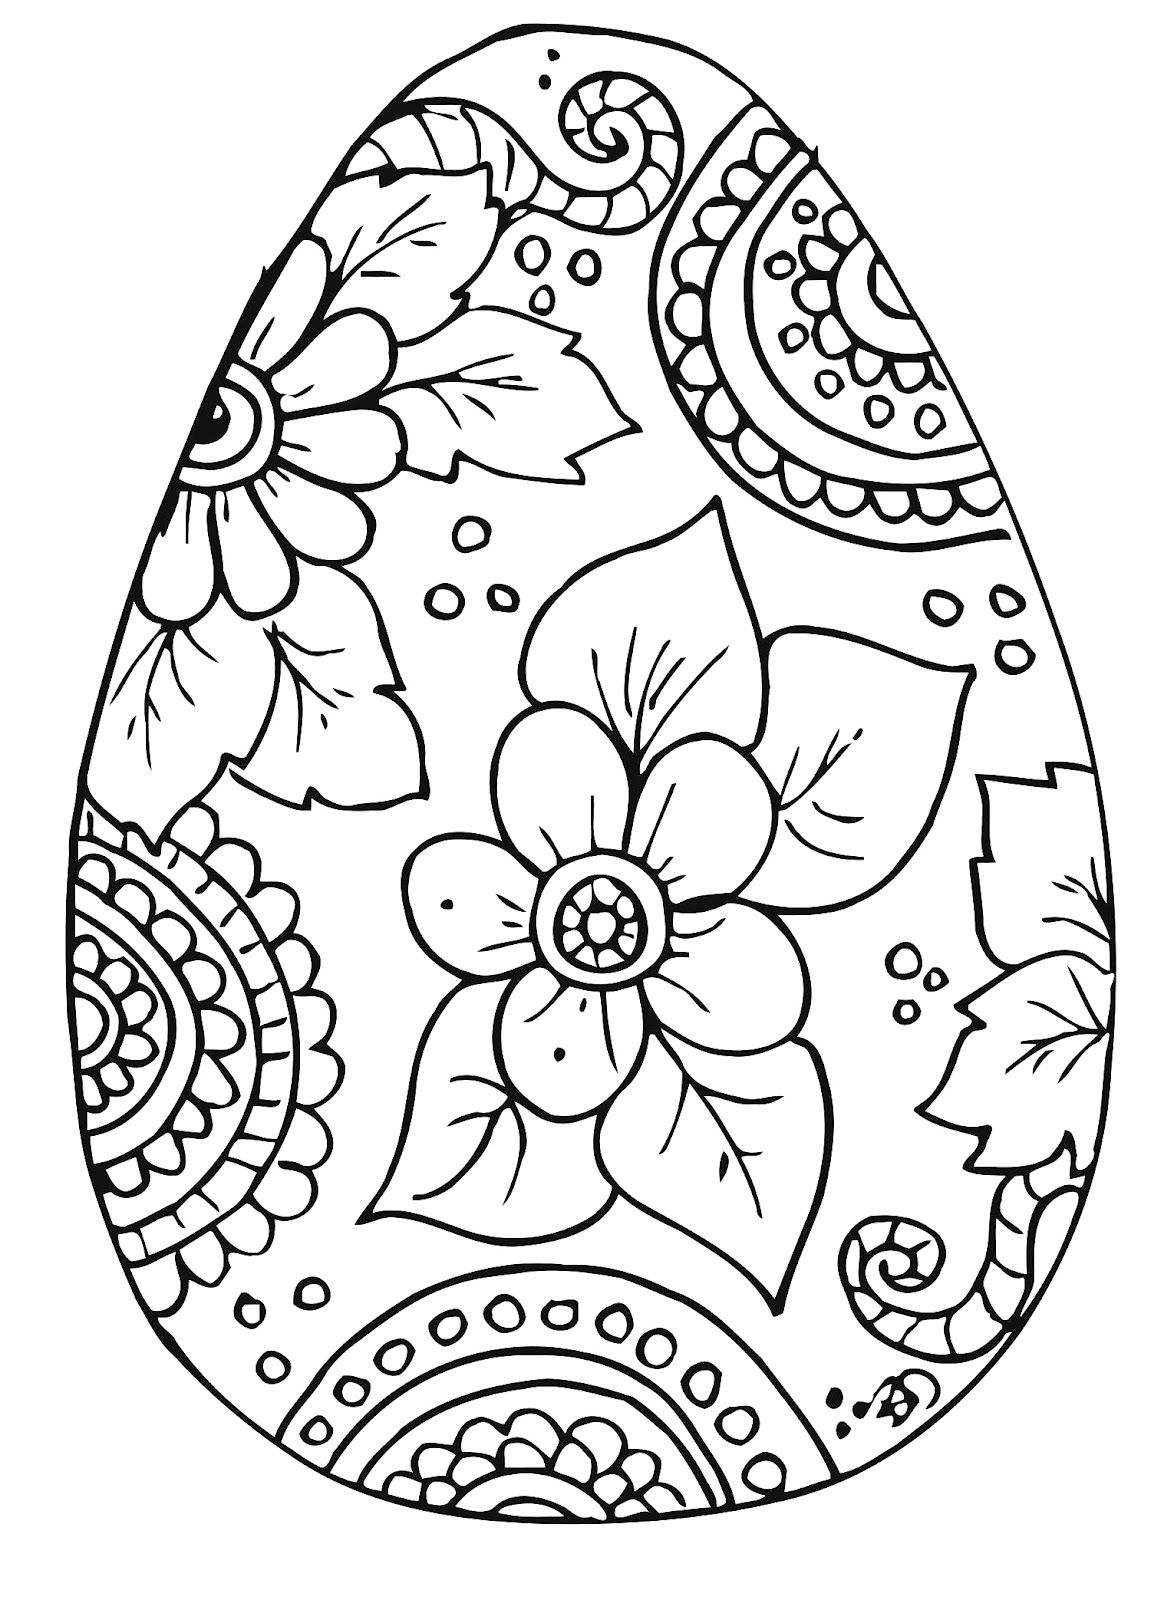 Attirant Designs: Free Coloring Page Easter / Kleurplaat Pasen. 3 Egg Painting  Patterns To Use For Painting Rocks!